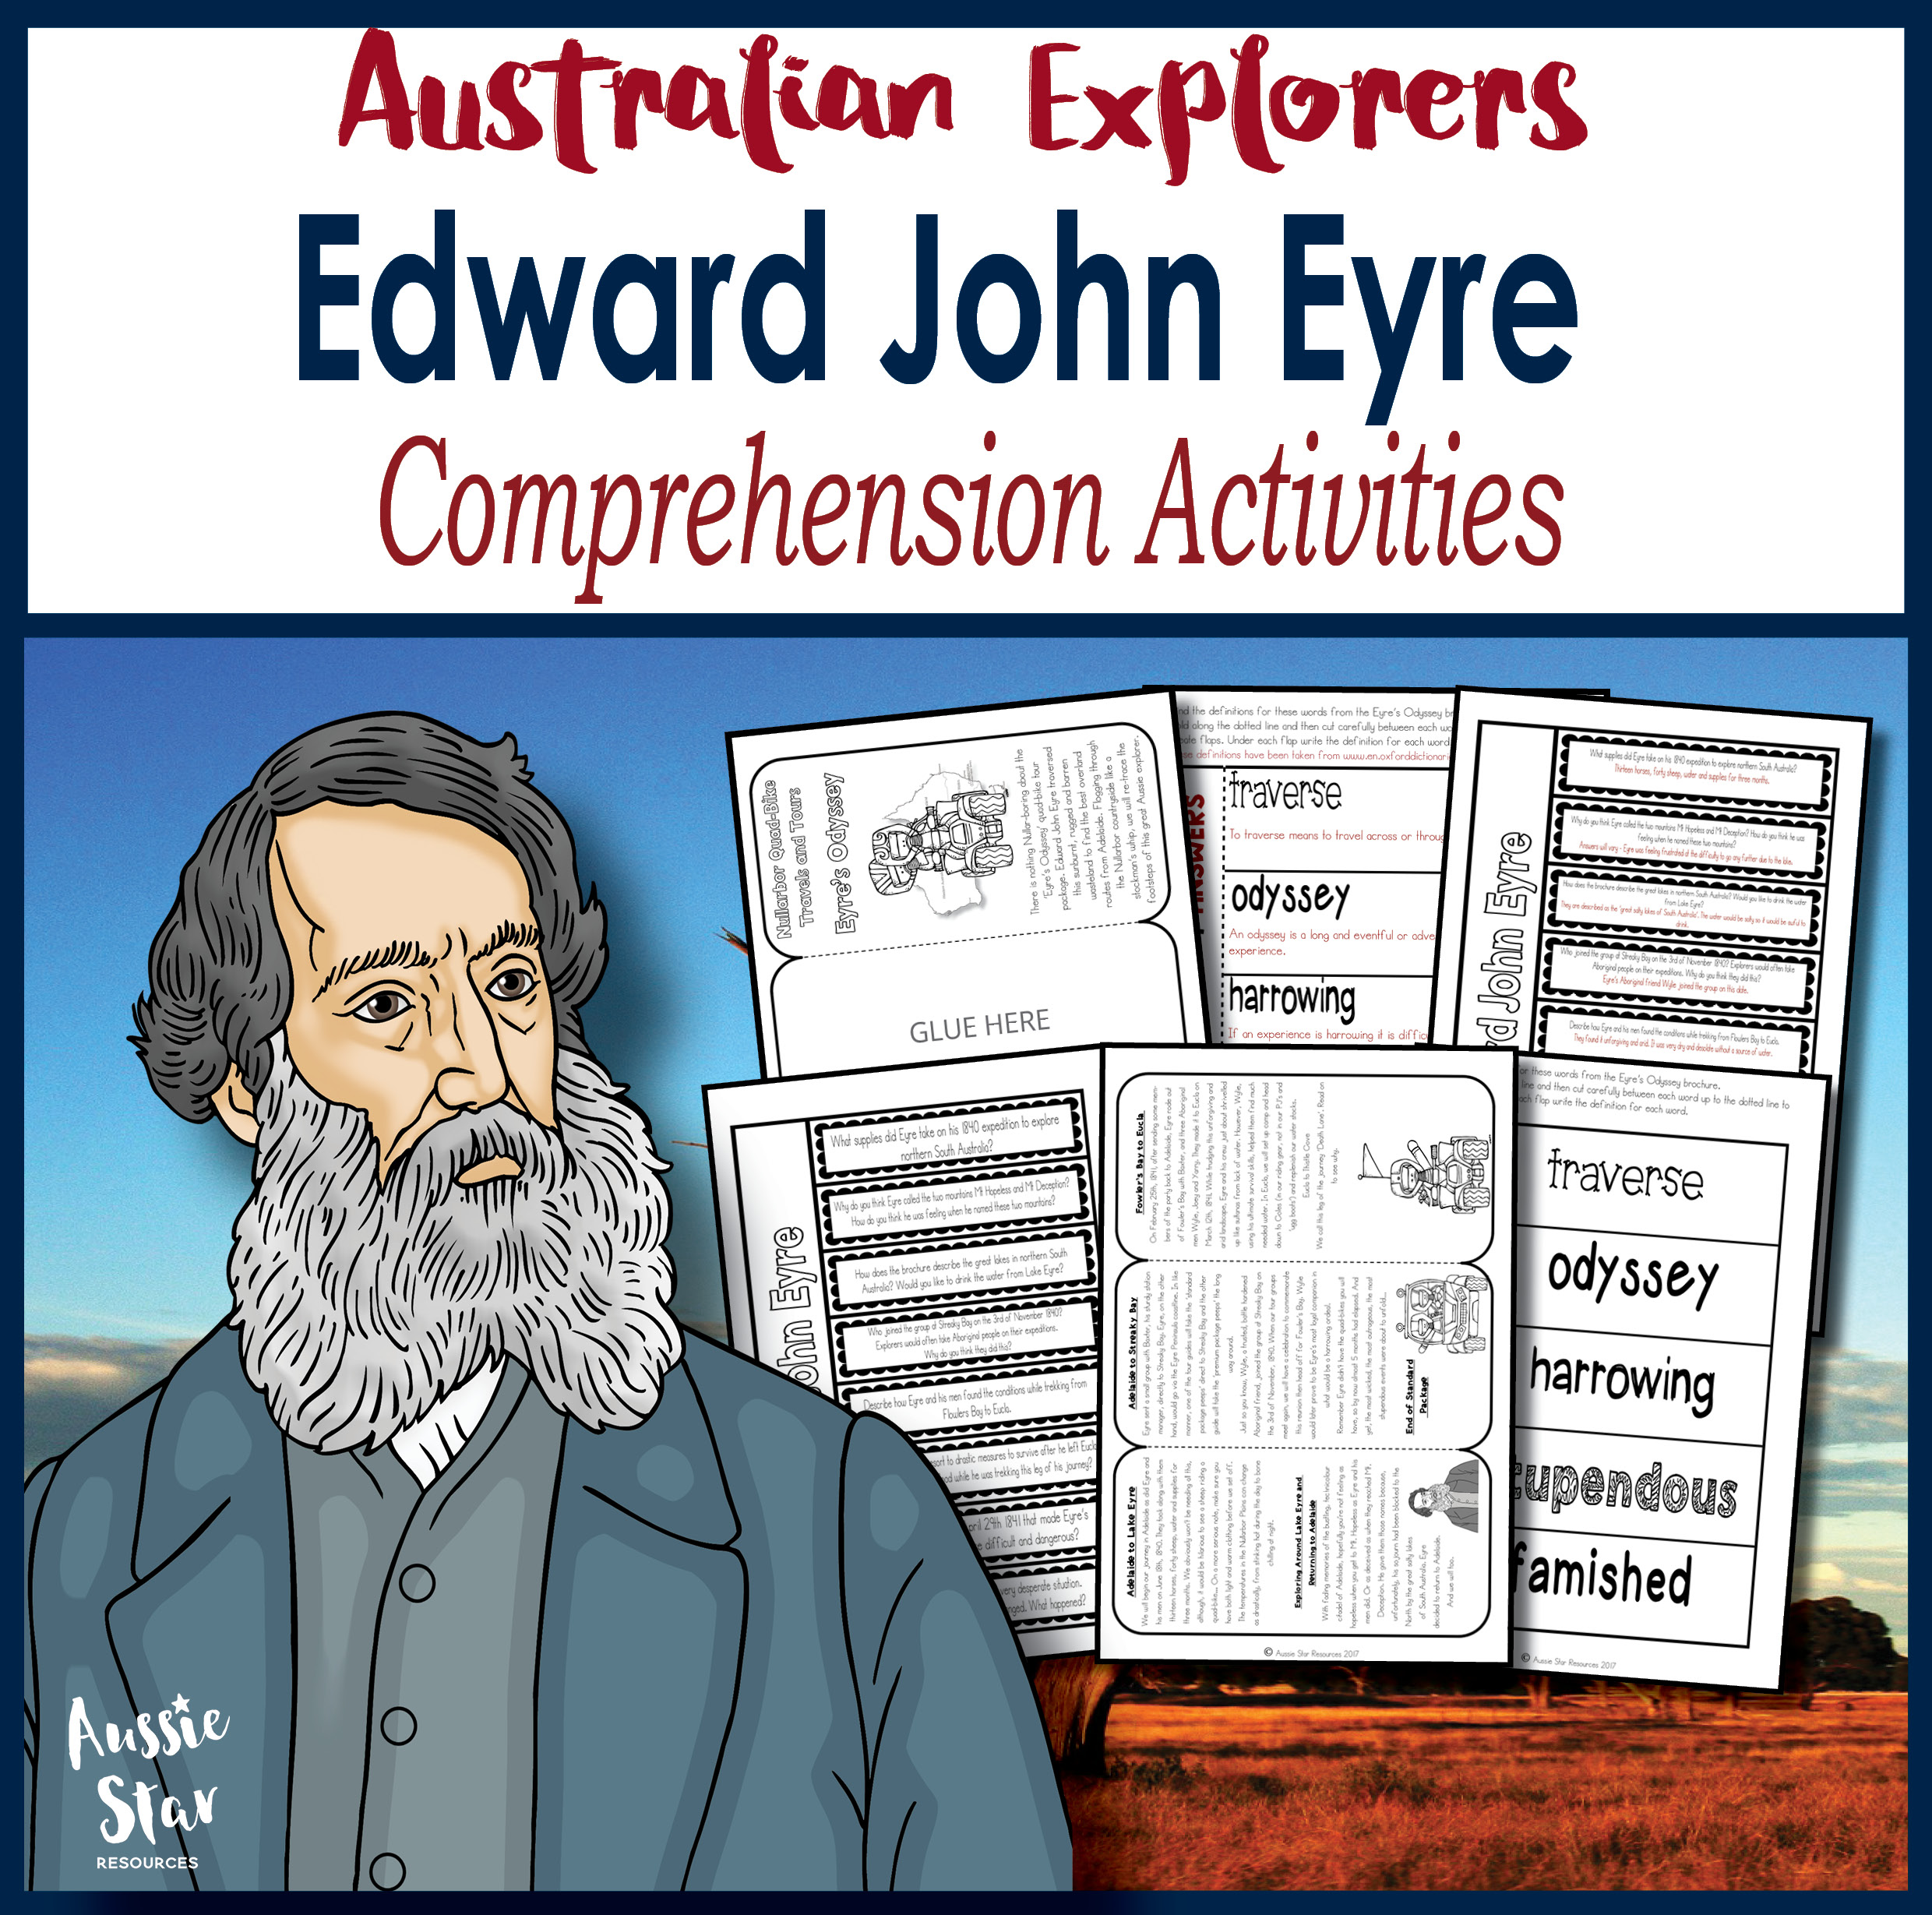 Edward John Eyre Comprehension Activities